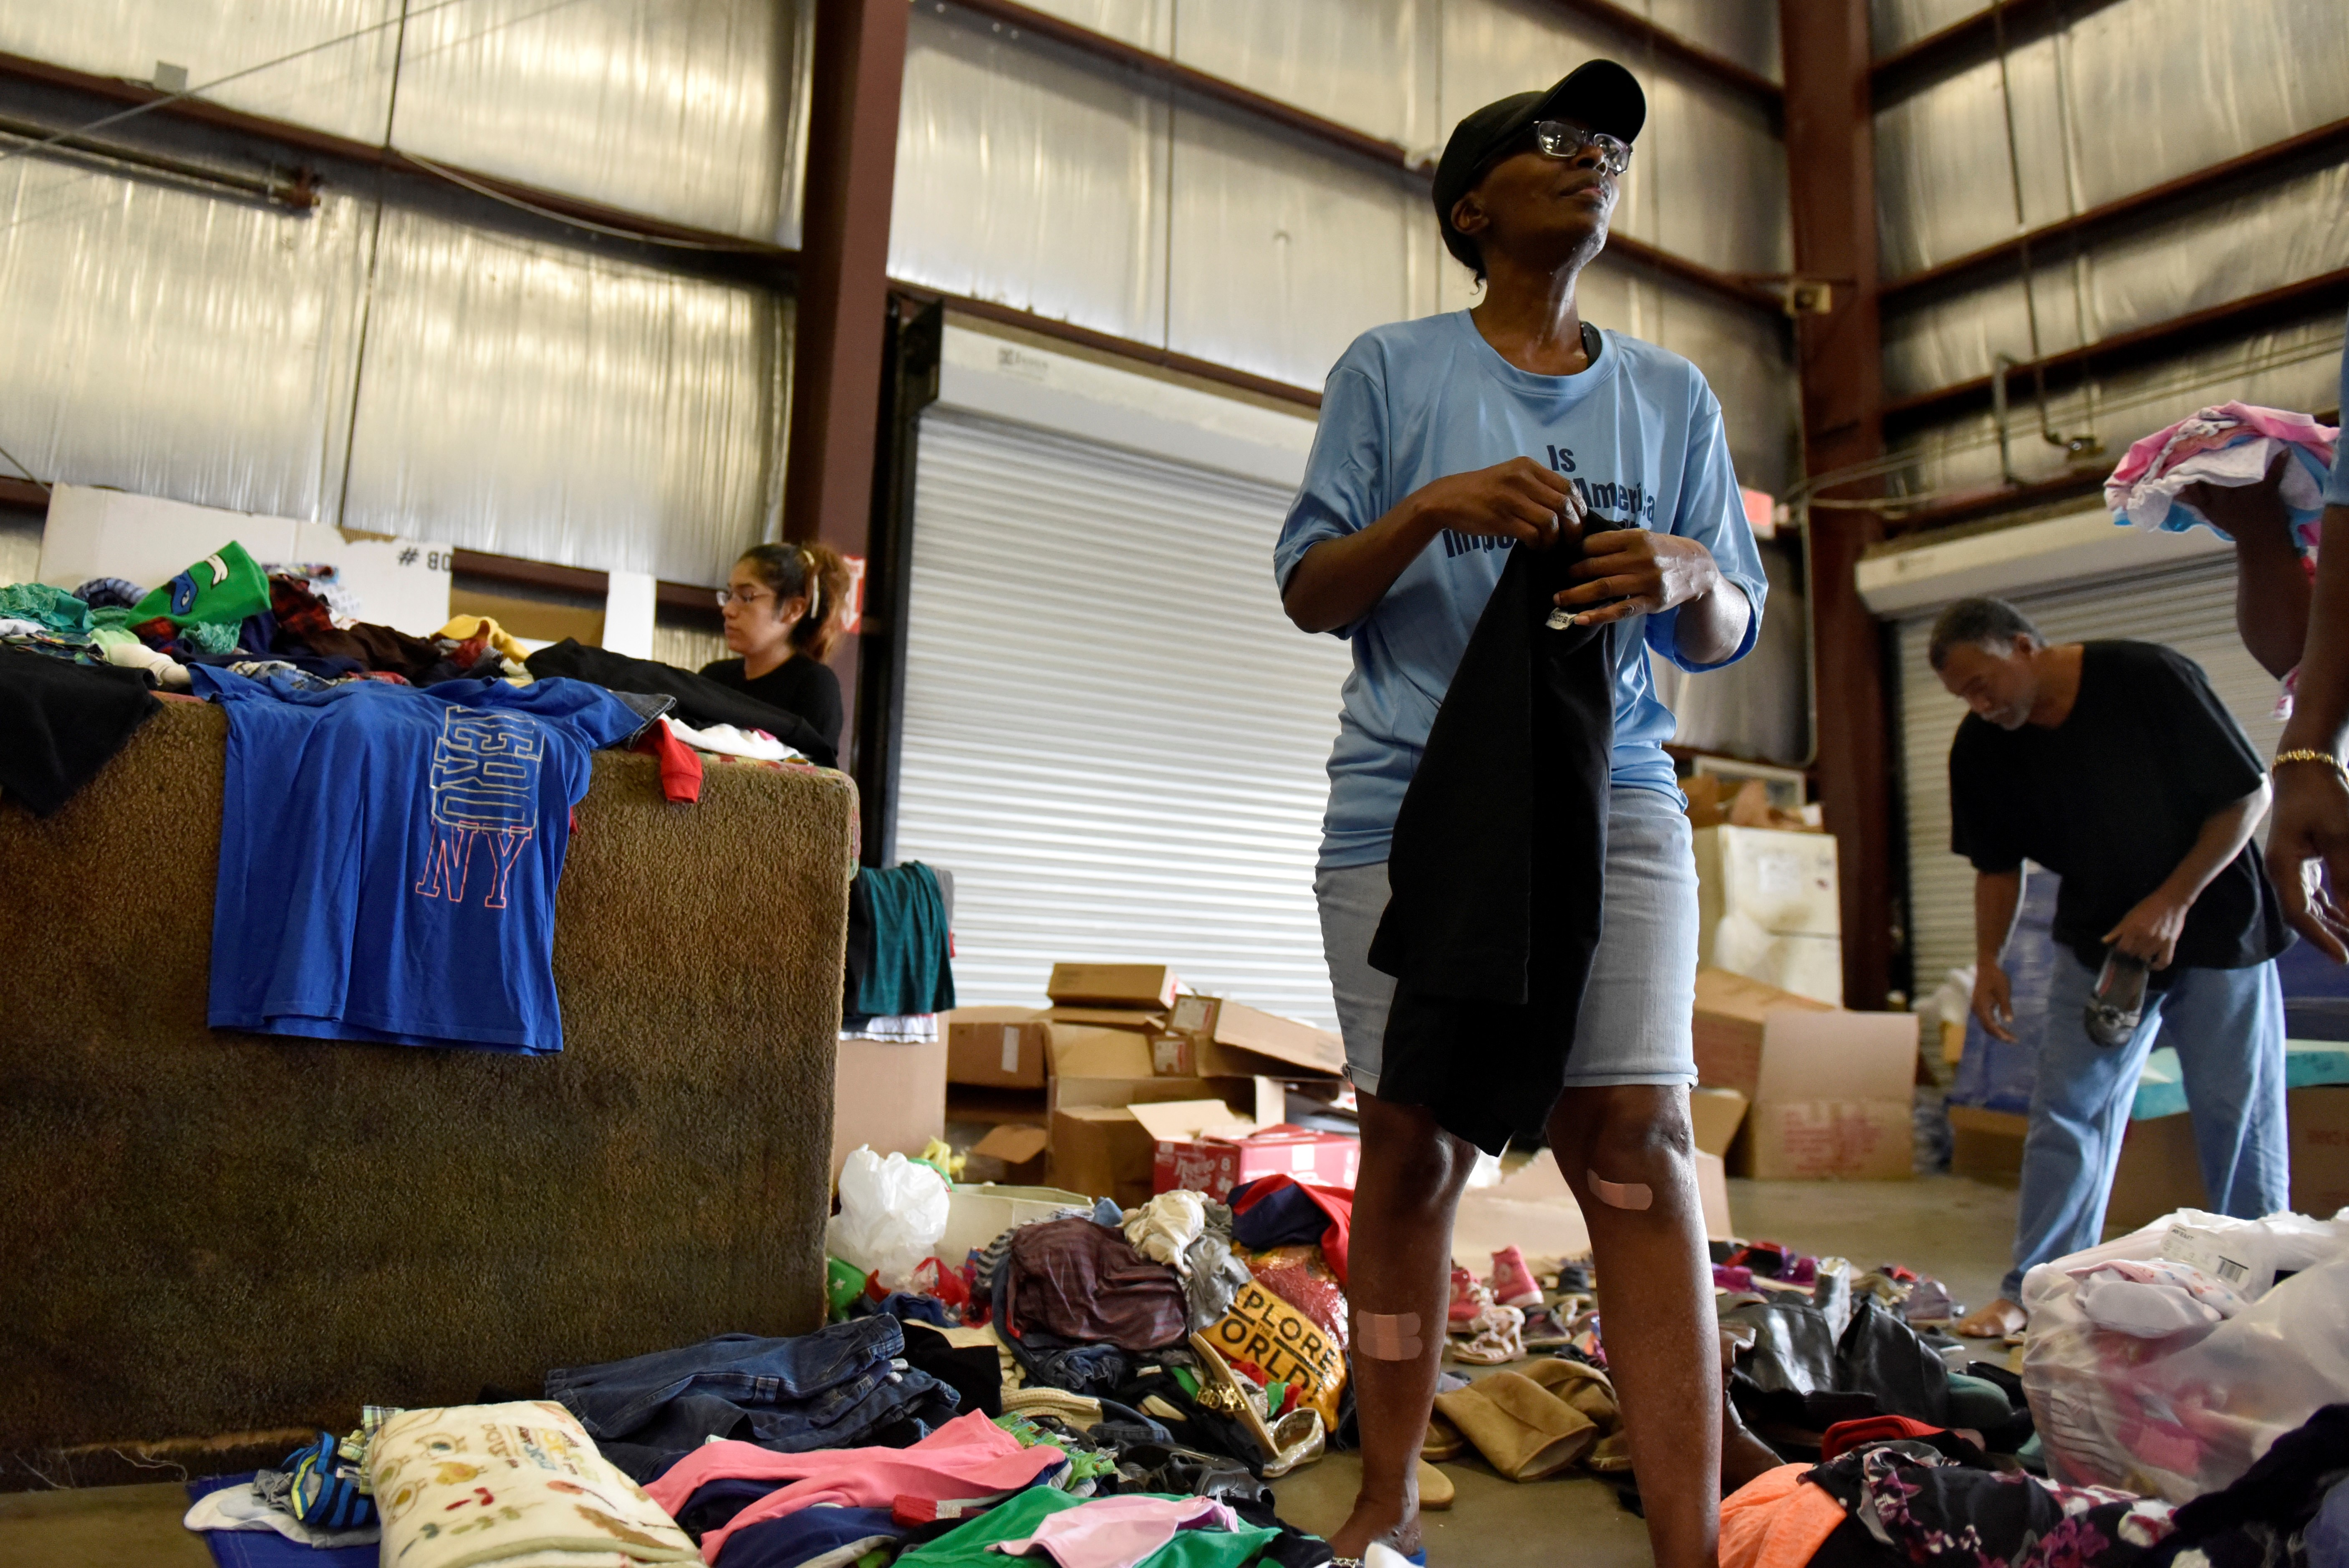 Evacuee Carolyn Jackson sorts through donated clothing in Houston.  Reuters/Nick Oxford